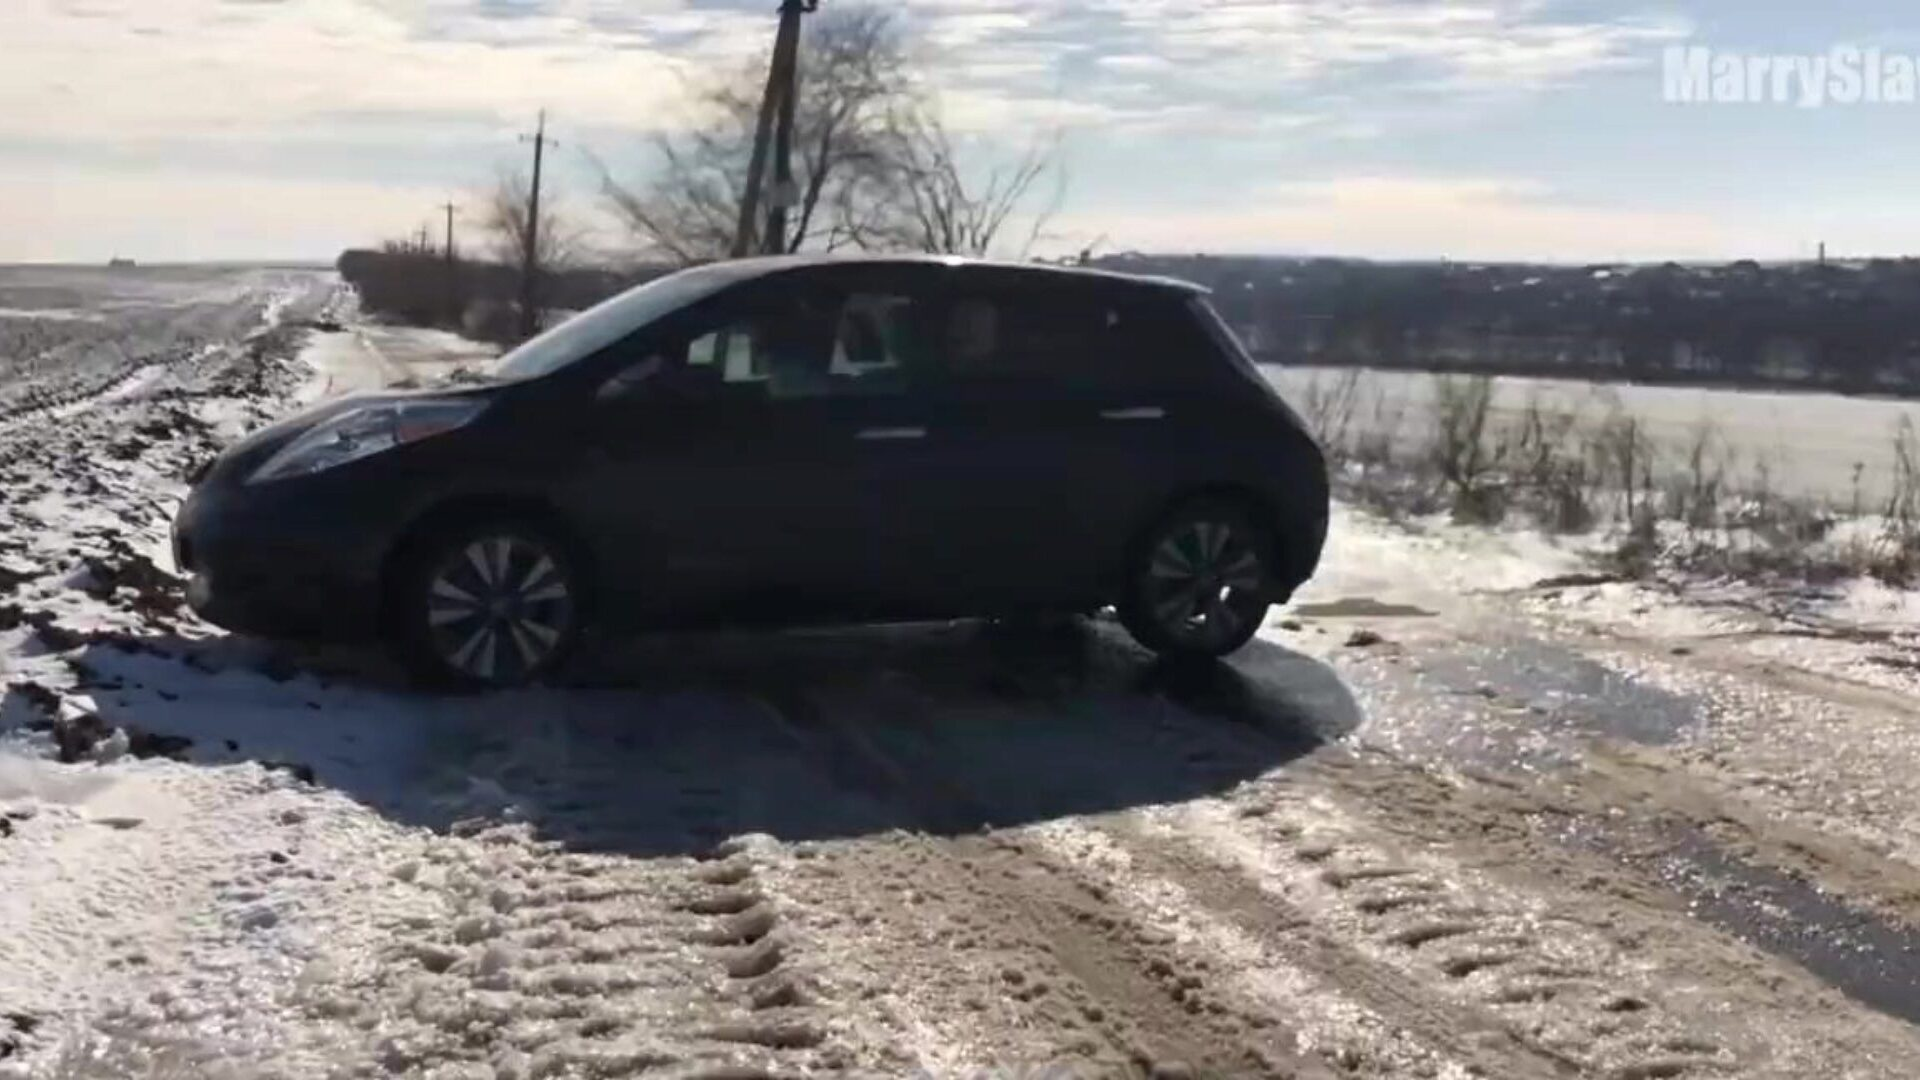 HOT PUBLIC SEX IN a CAR - in the Middle of the Winter Field